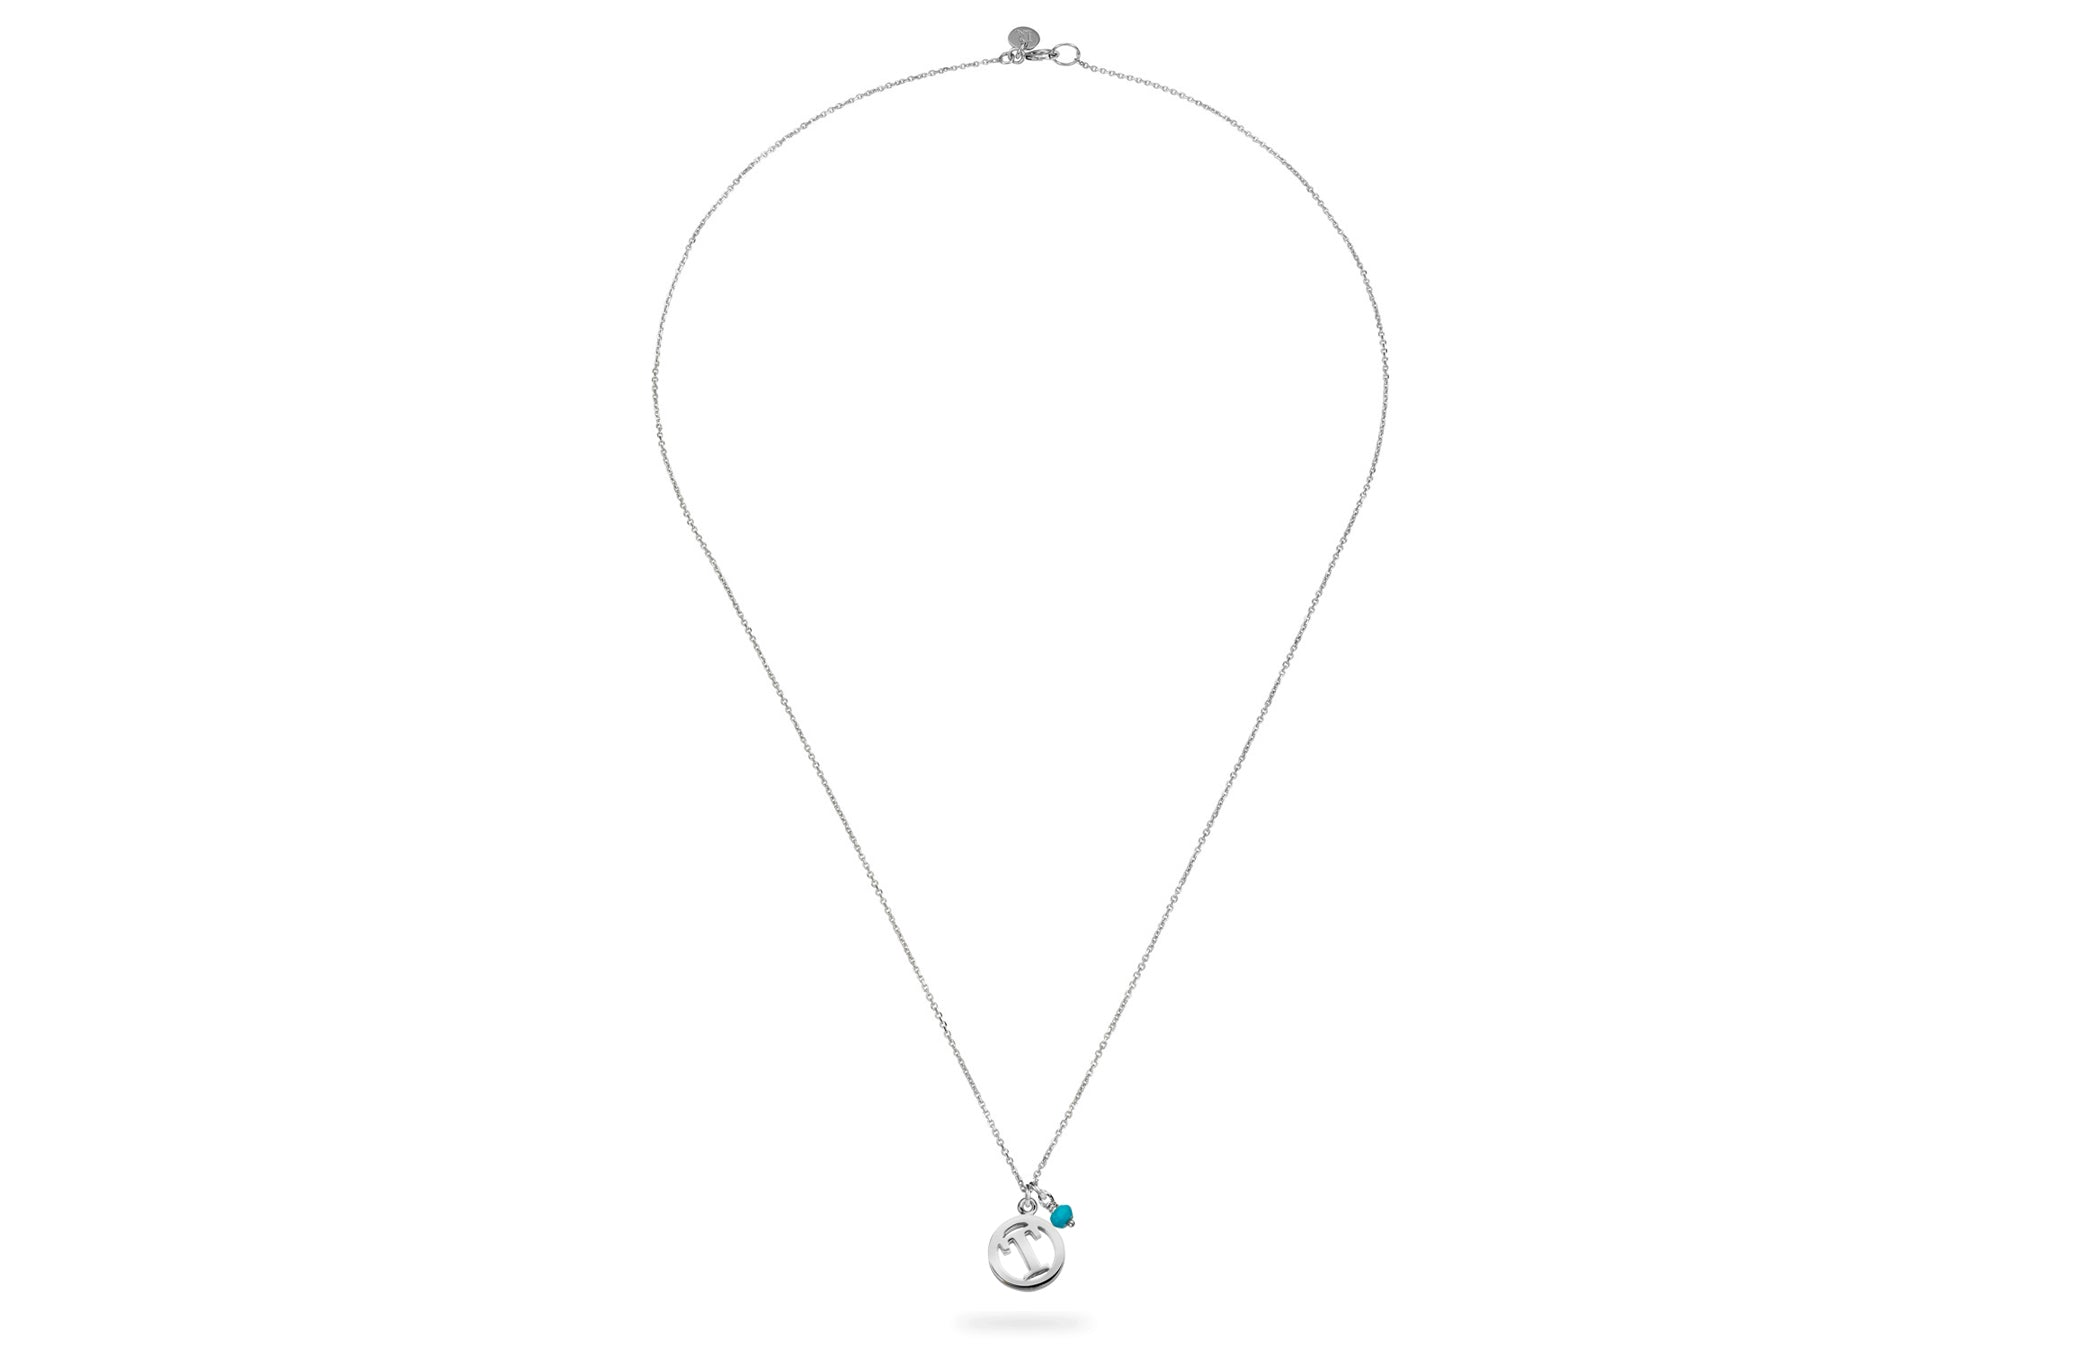 Luke Rose Jewellery silver turquoise initial necklace